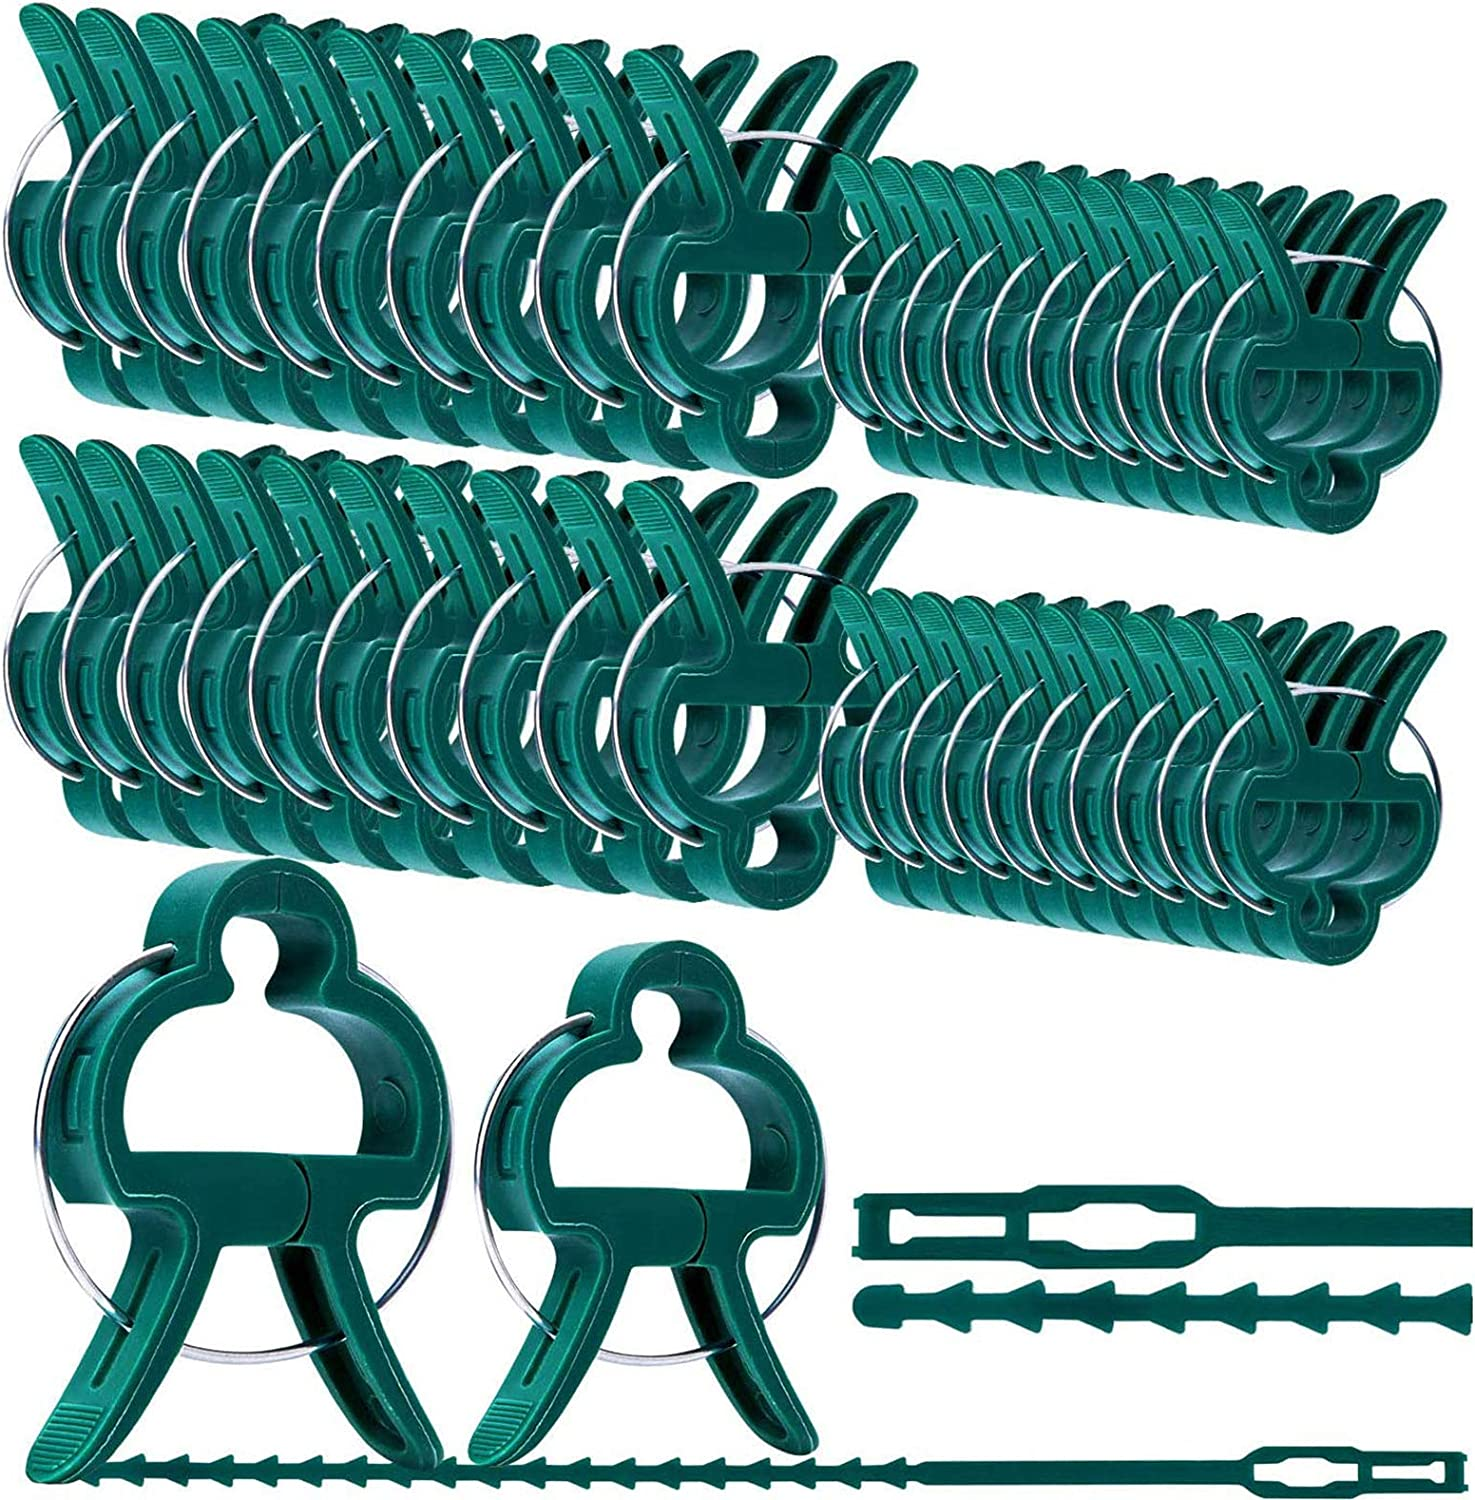 YGAOHF Plant Support Clips, 60 PCS Adjusting Gardening Spring Clips Plant & Flower Lever Loop Gripper Clips Tool for Supporting or Straightening Plant Stems, Stalks, and Vines (3 Style)